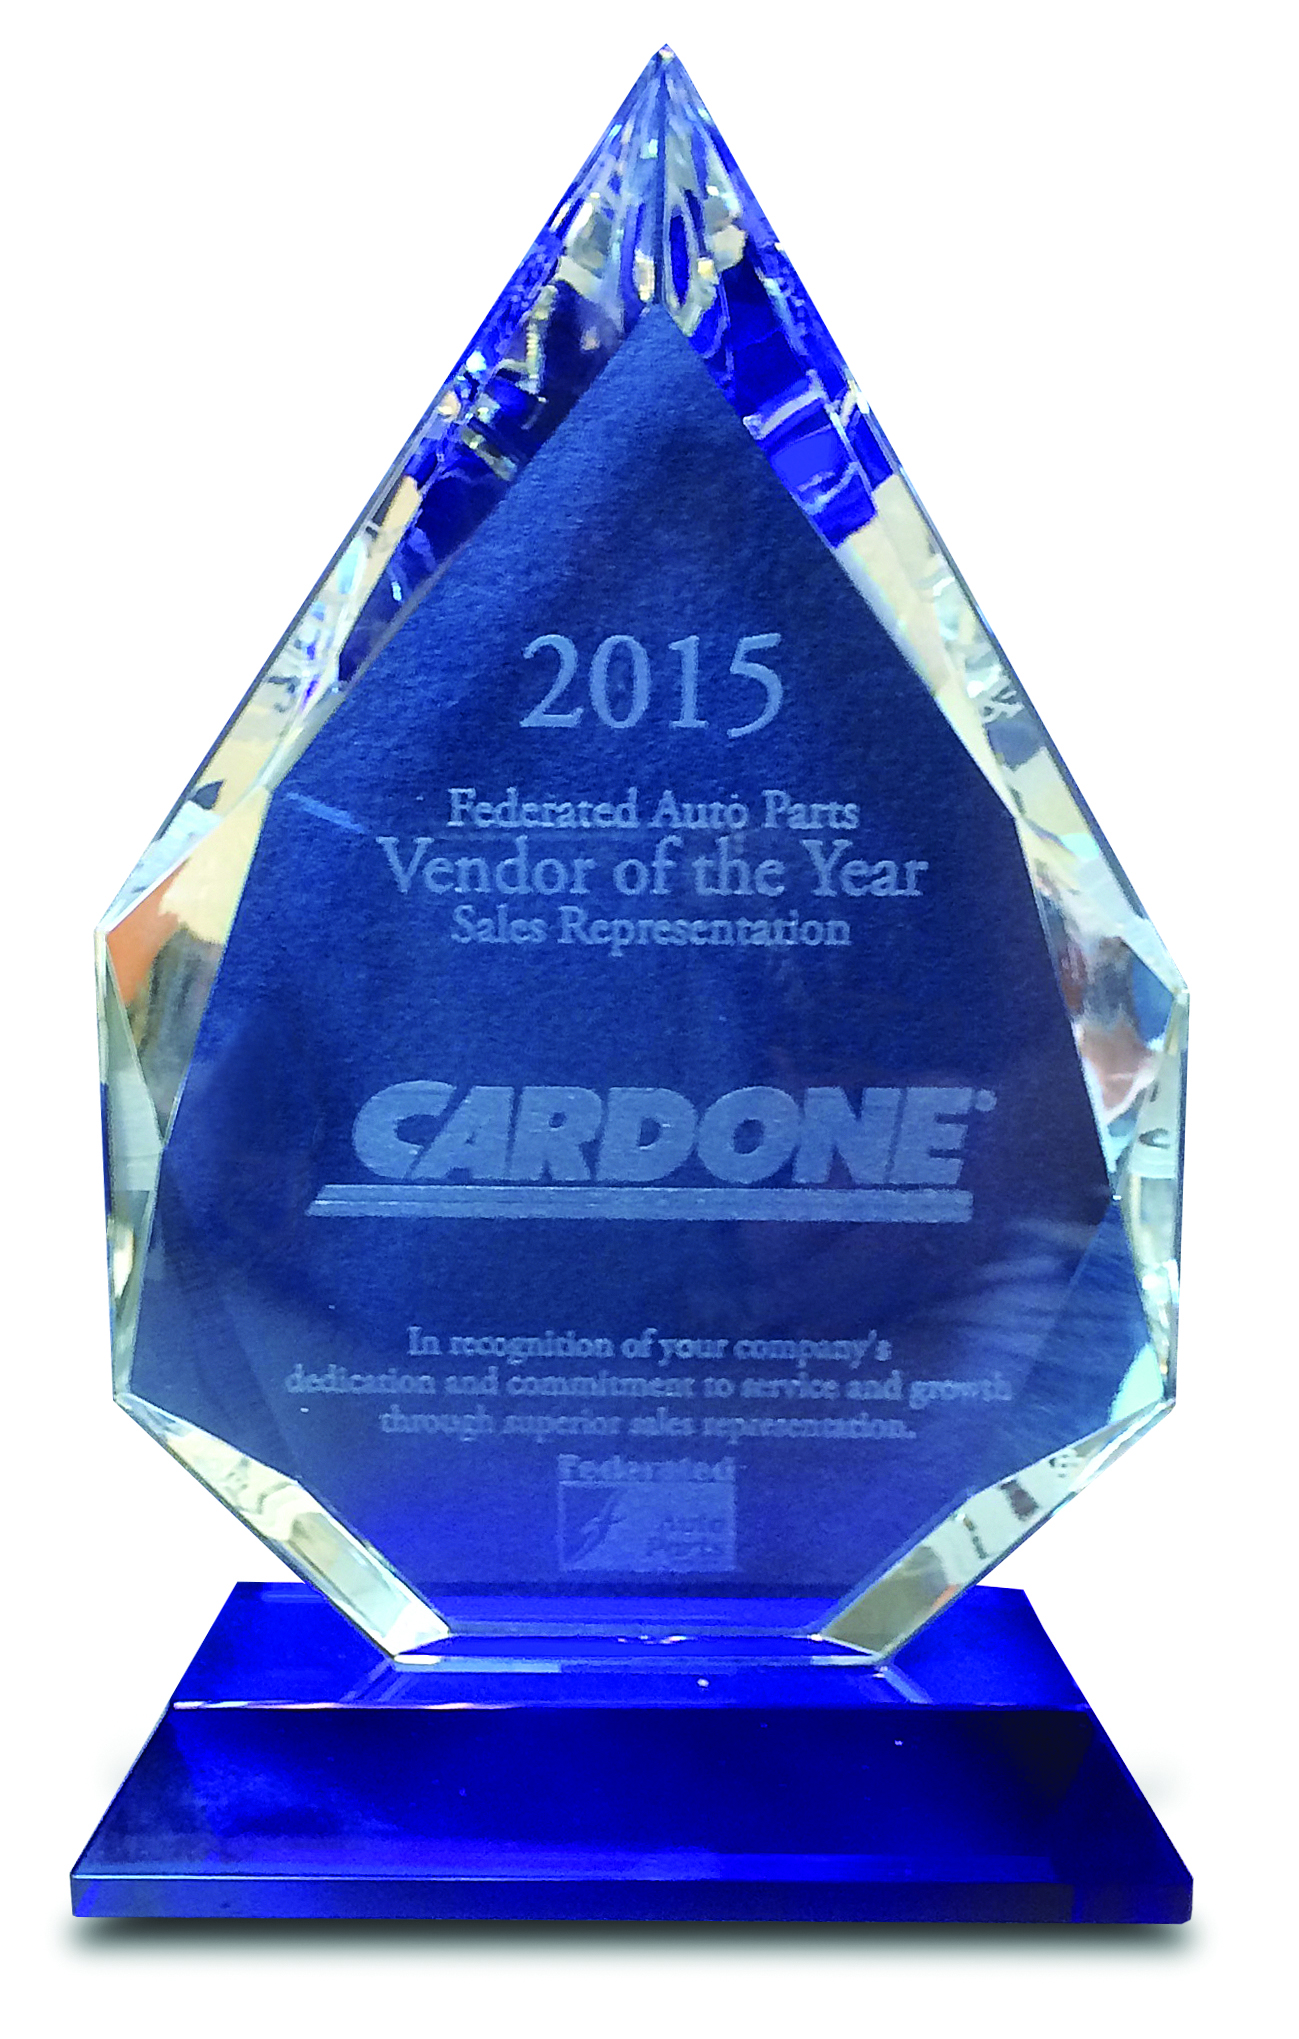 Federated Auto Parts Honors Cardone with Sales Representation Award